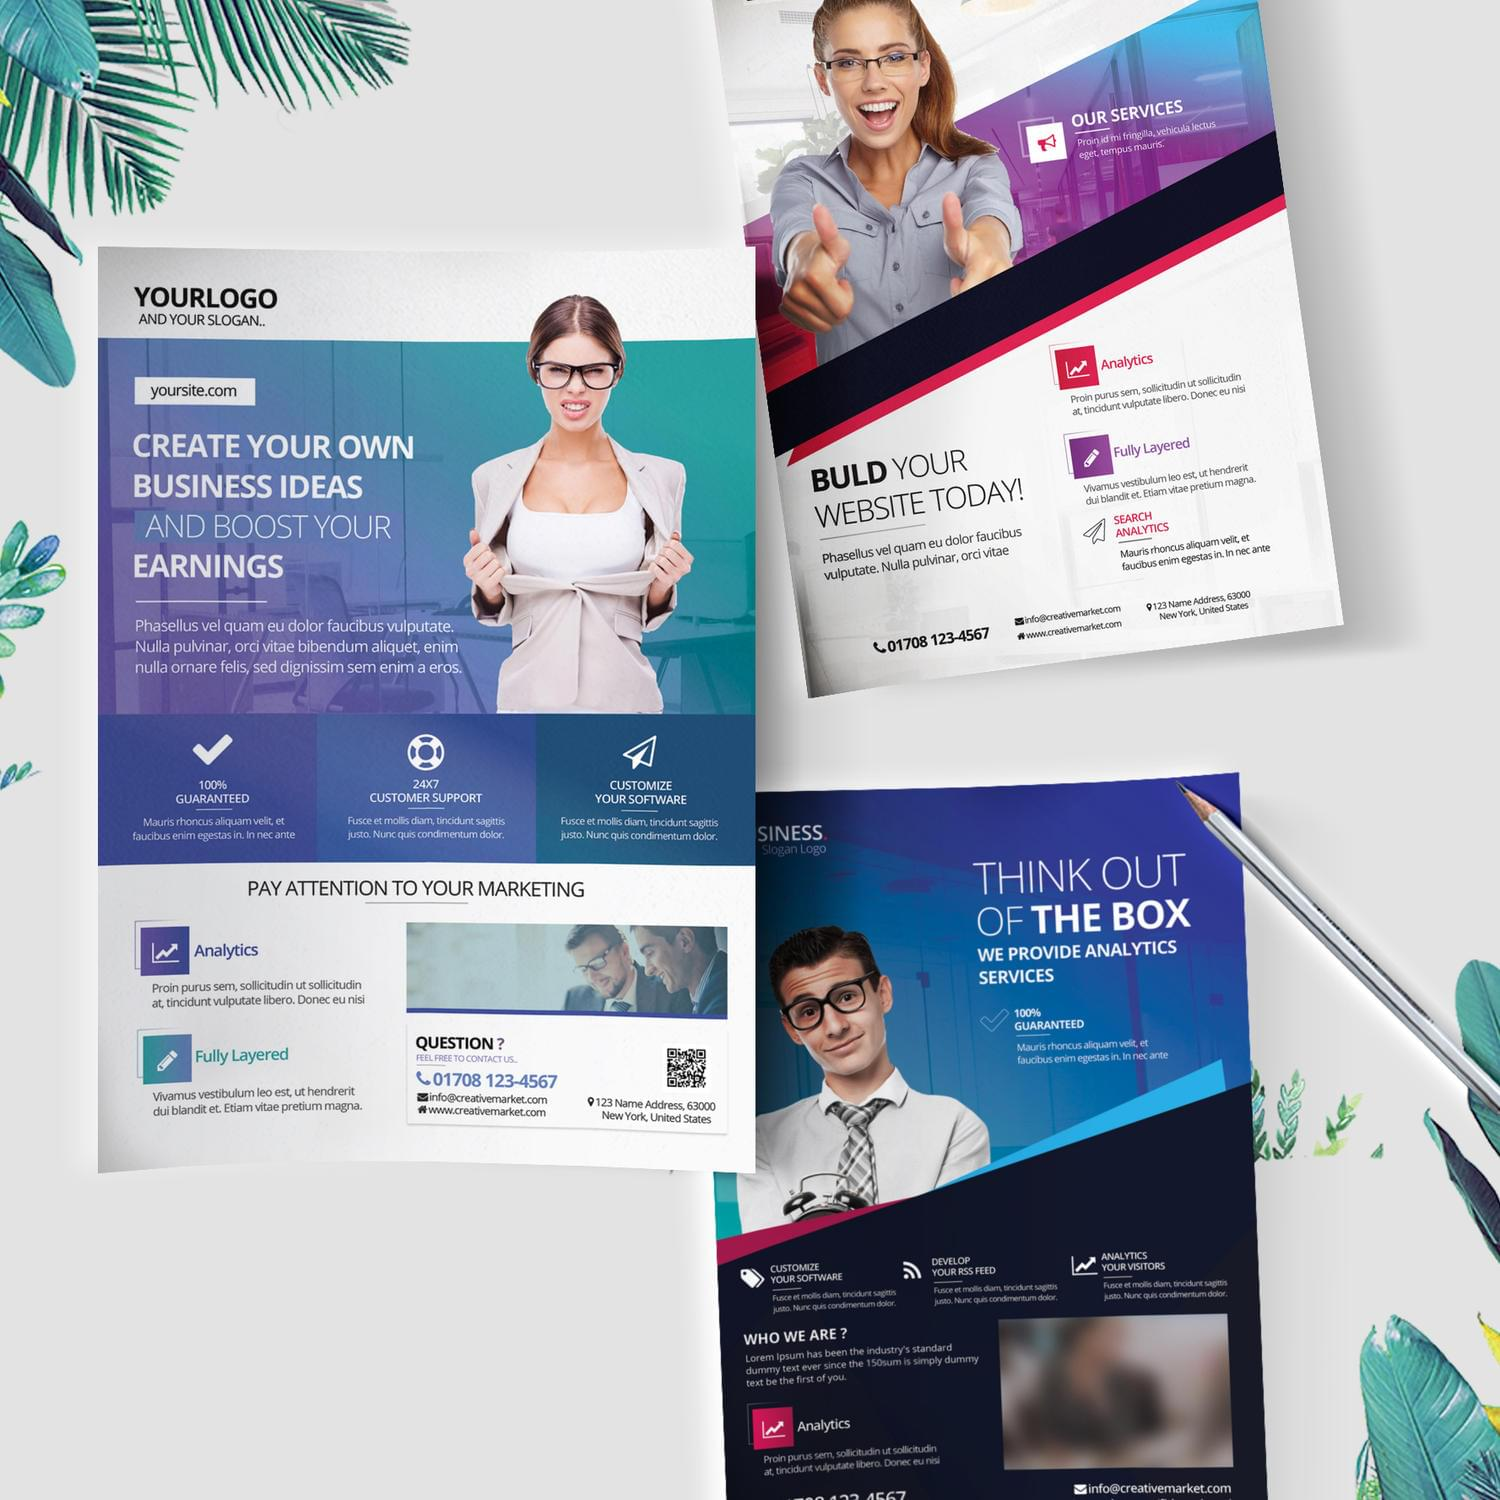 Creative Flyer for Business or Events by fidanselmani - 114854